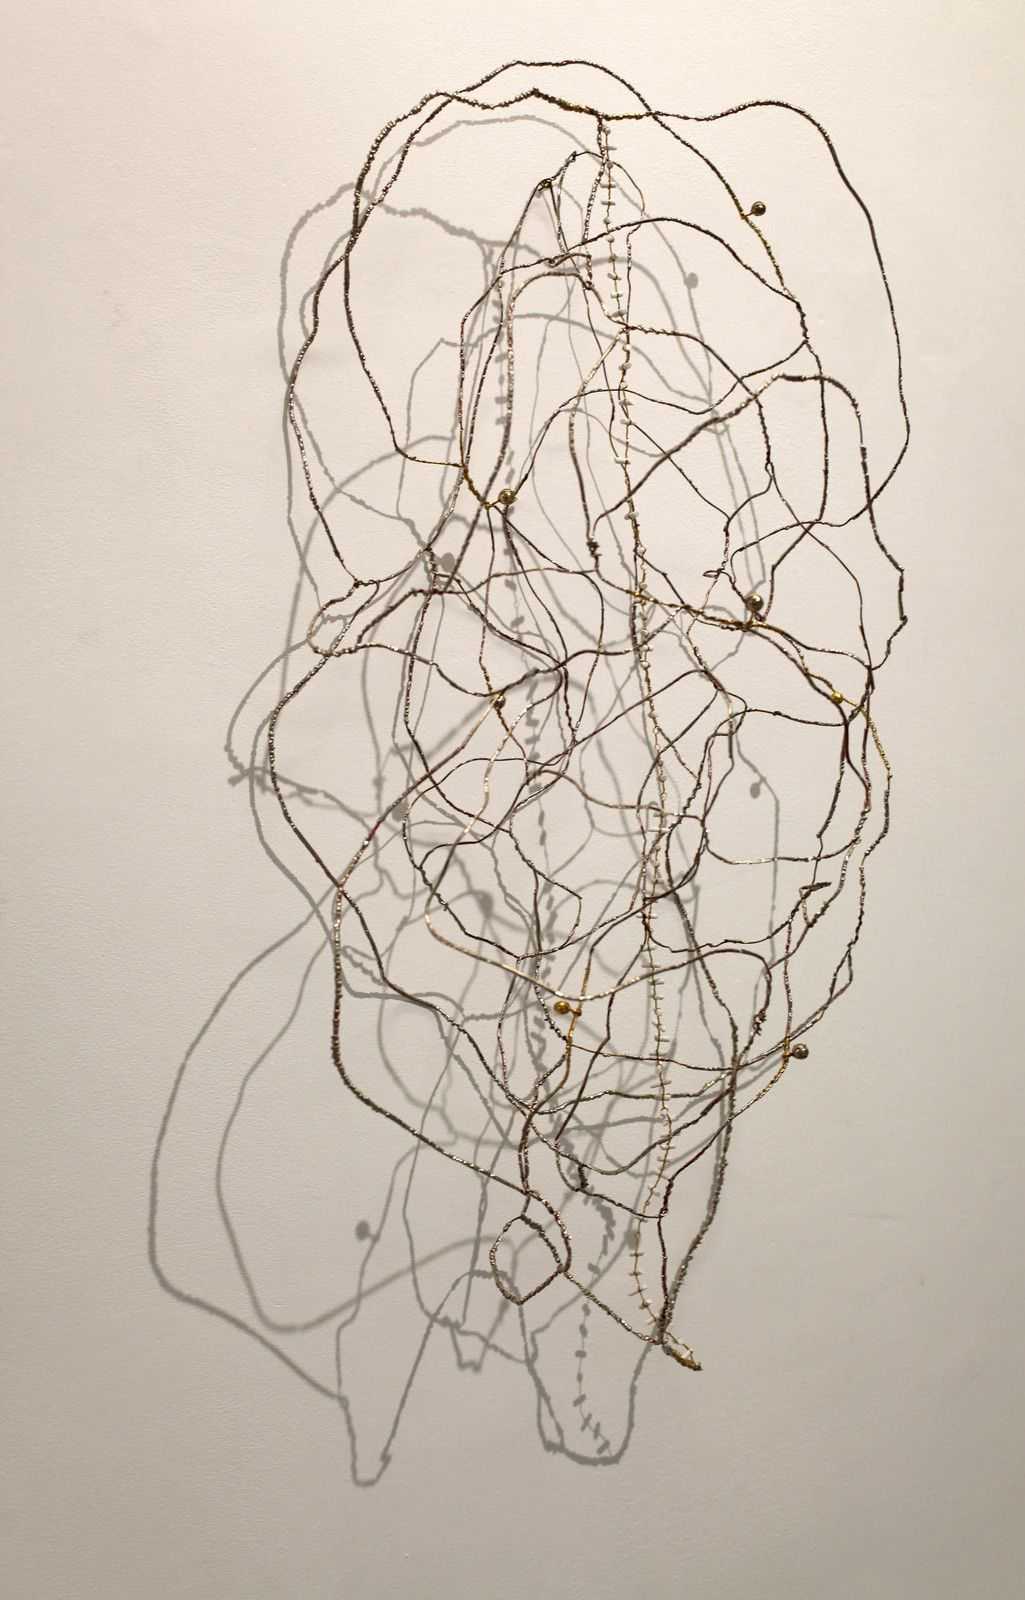 """Dessin organo-cosmique #3"", 2019 de Sabrina VITALI - Courtesy Galerie Papillon © Photo Éric Simon"